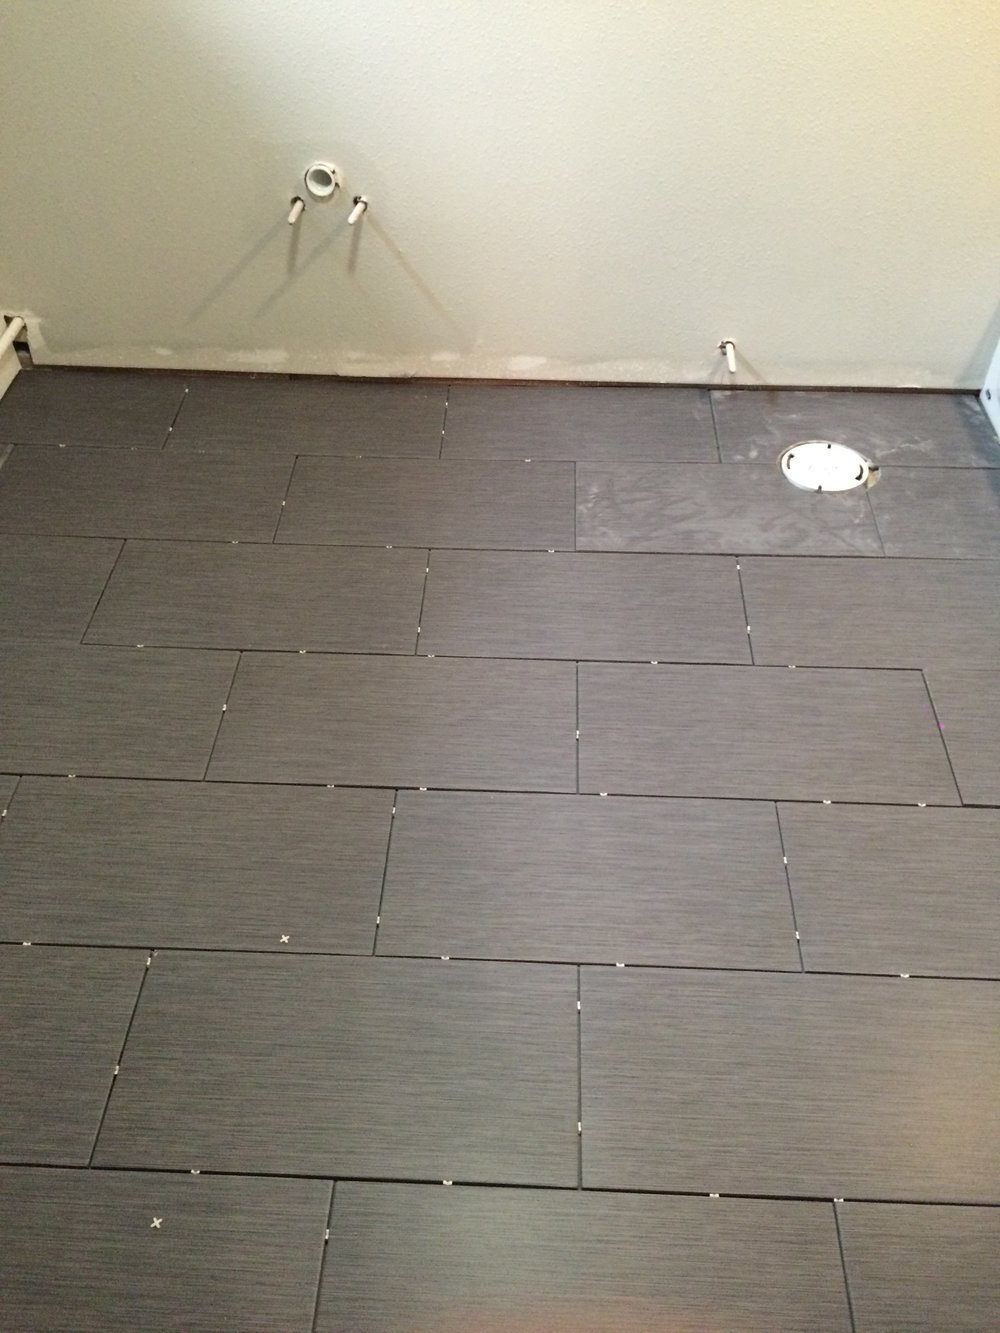 Home Depot floor tile